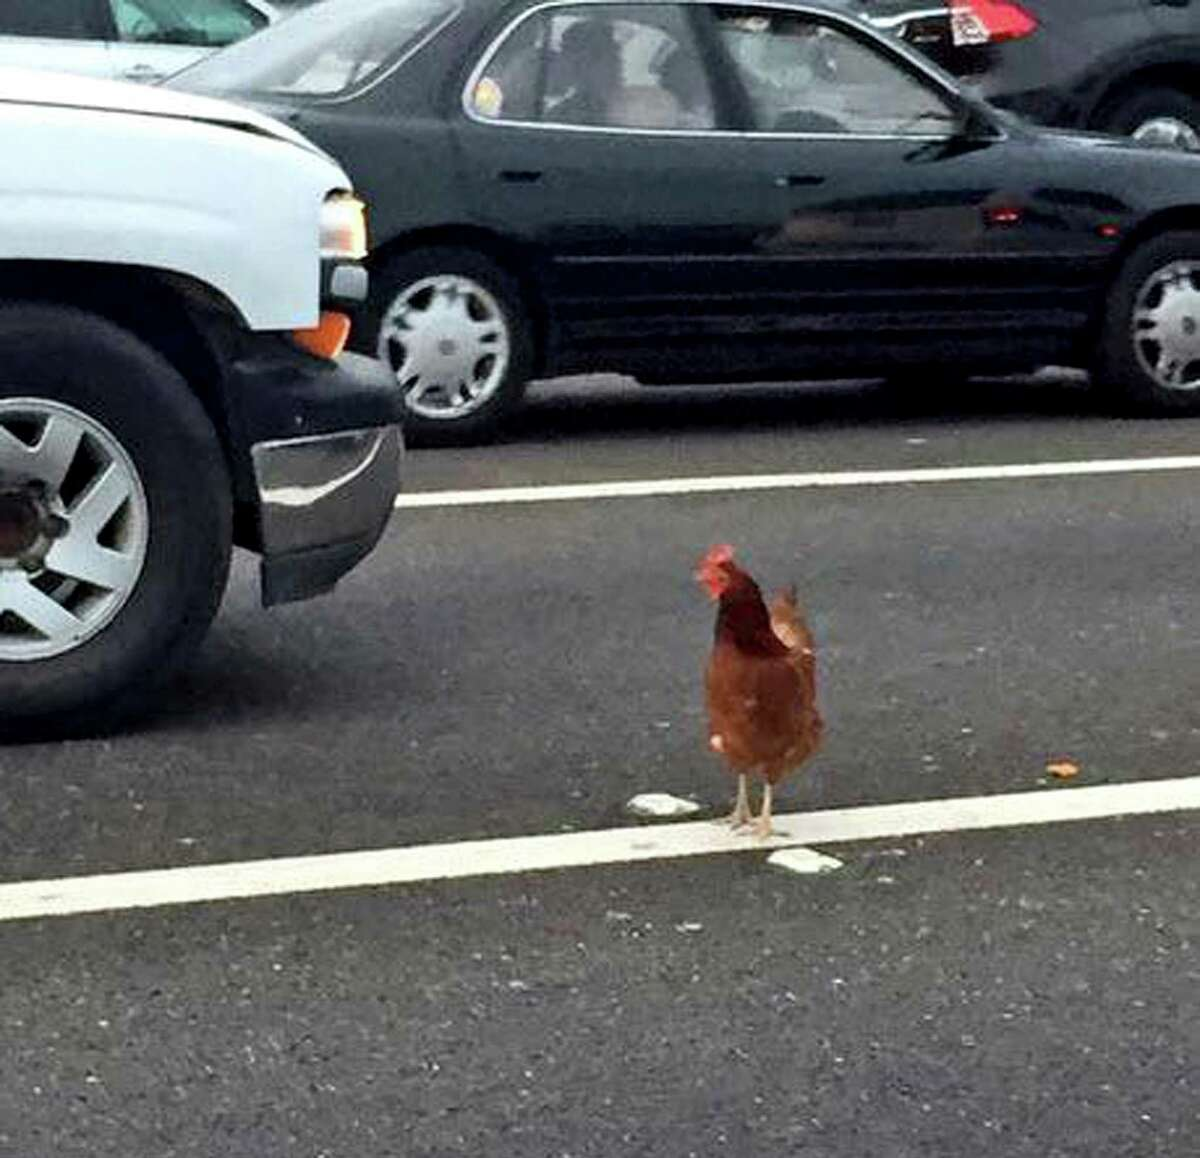 In this Wednesday, Sept. 2, 2015 photo, a brown chicken runs across the road through the lanes of a toll plaza on the Bay Bridge in San Francisco. California Highway Patrol officers managed to capture the felonious chicken that fouled up rush-hour traffic on the bridge.